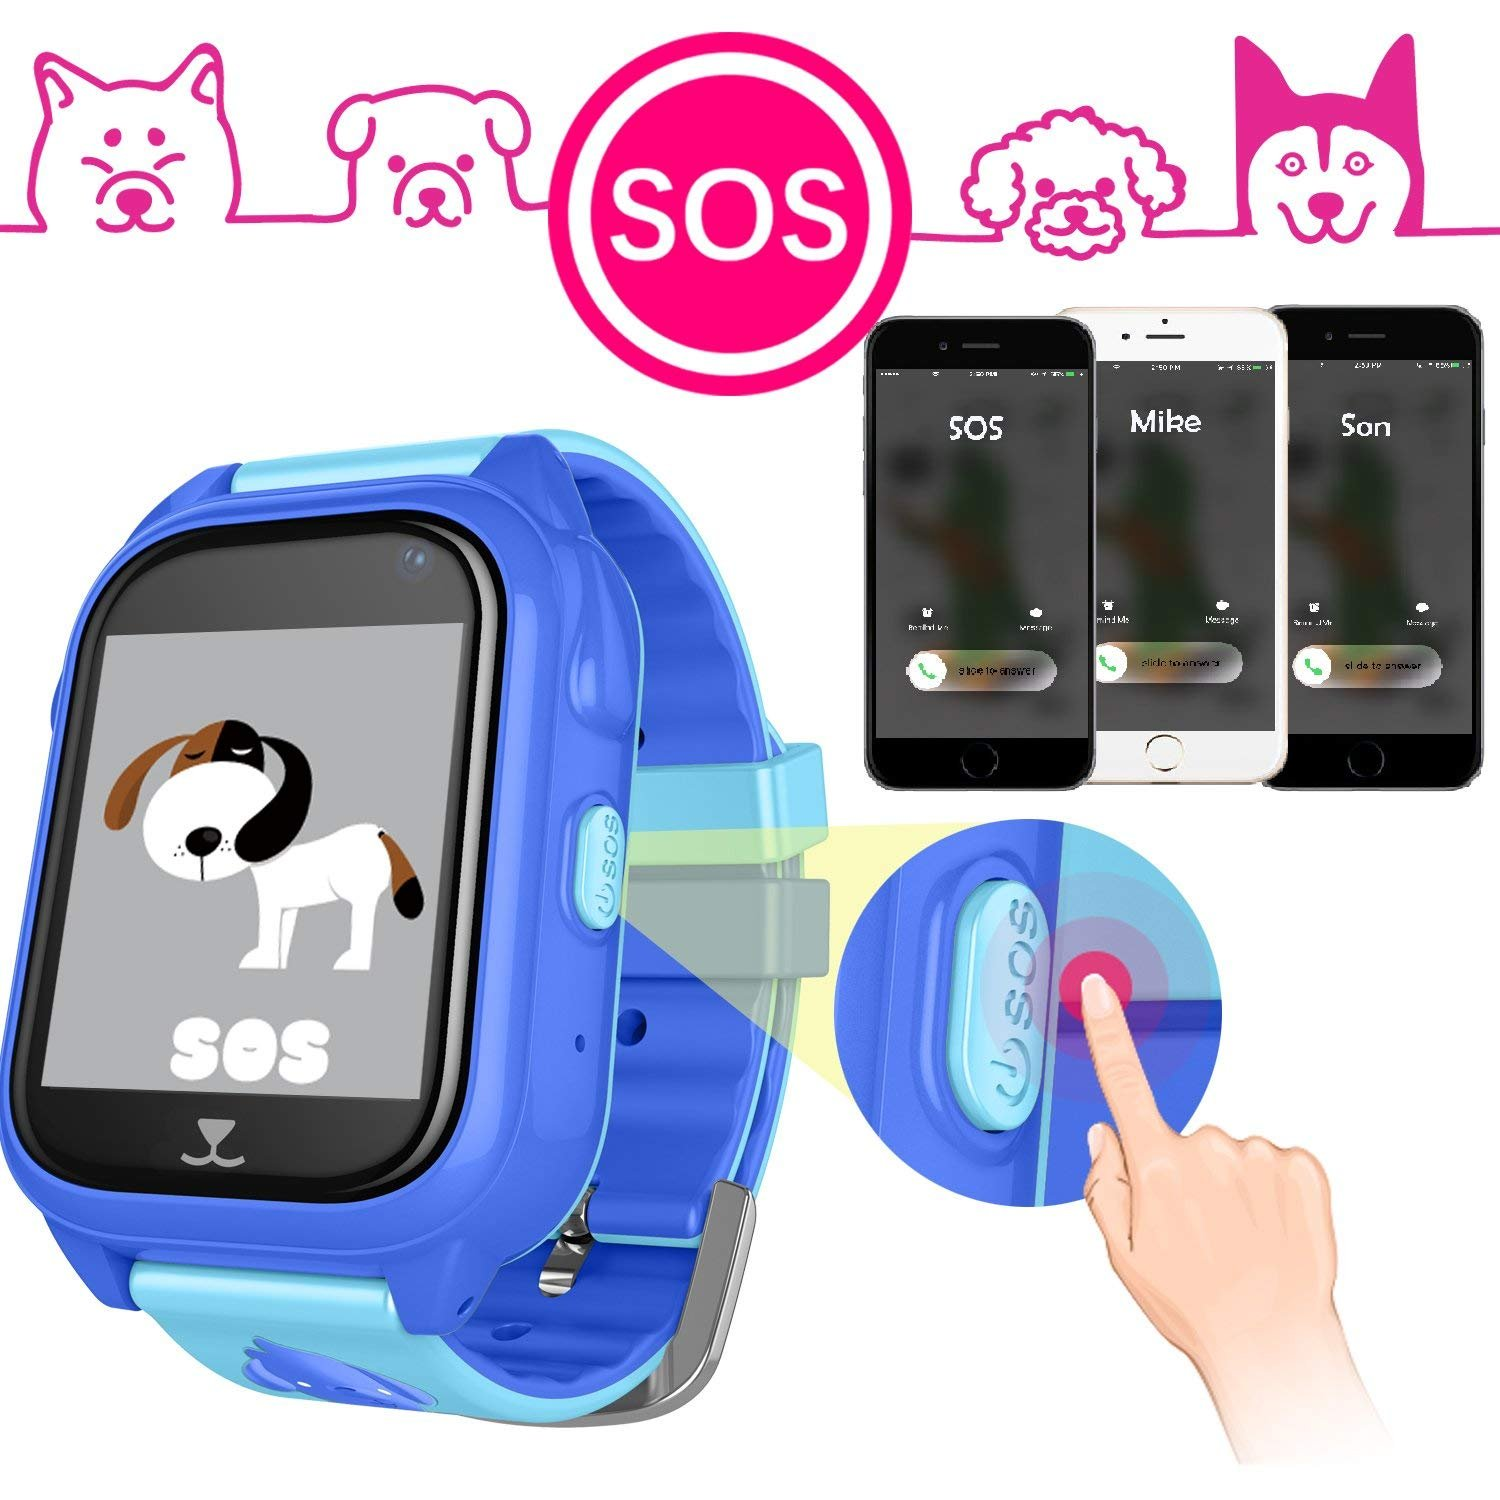 iCooLive Waterproof IP67 Kids Smart Watch Accurate GPS Tracker with FREE SIM CARD for Kid Boys Girls Smartwatch Phone watch Game watch with SOS Call Camera Electronic Learning Toys Birthday Gift by iCooLive (Image #6)